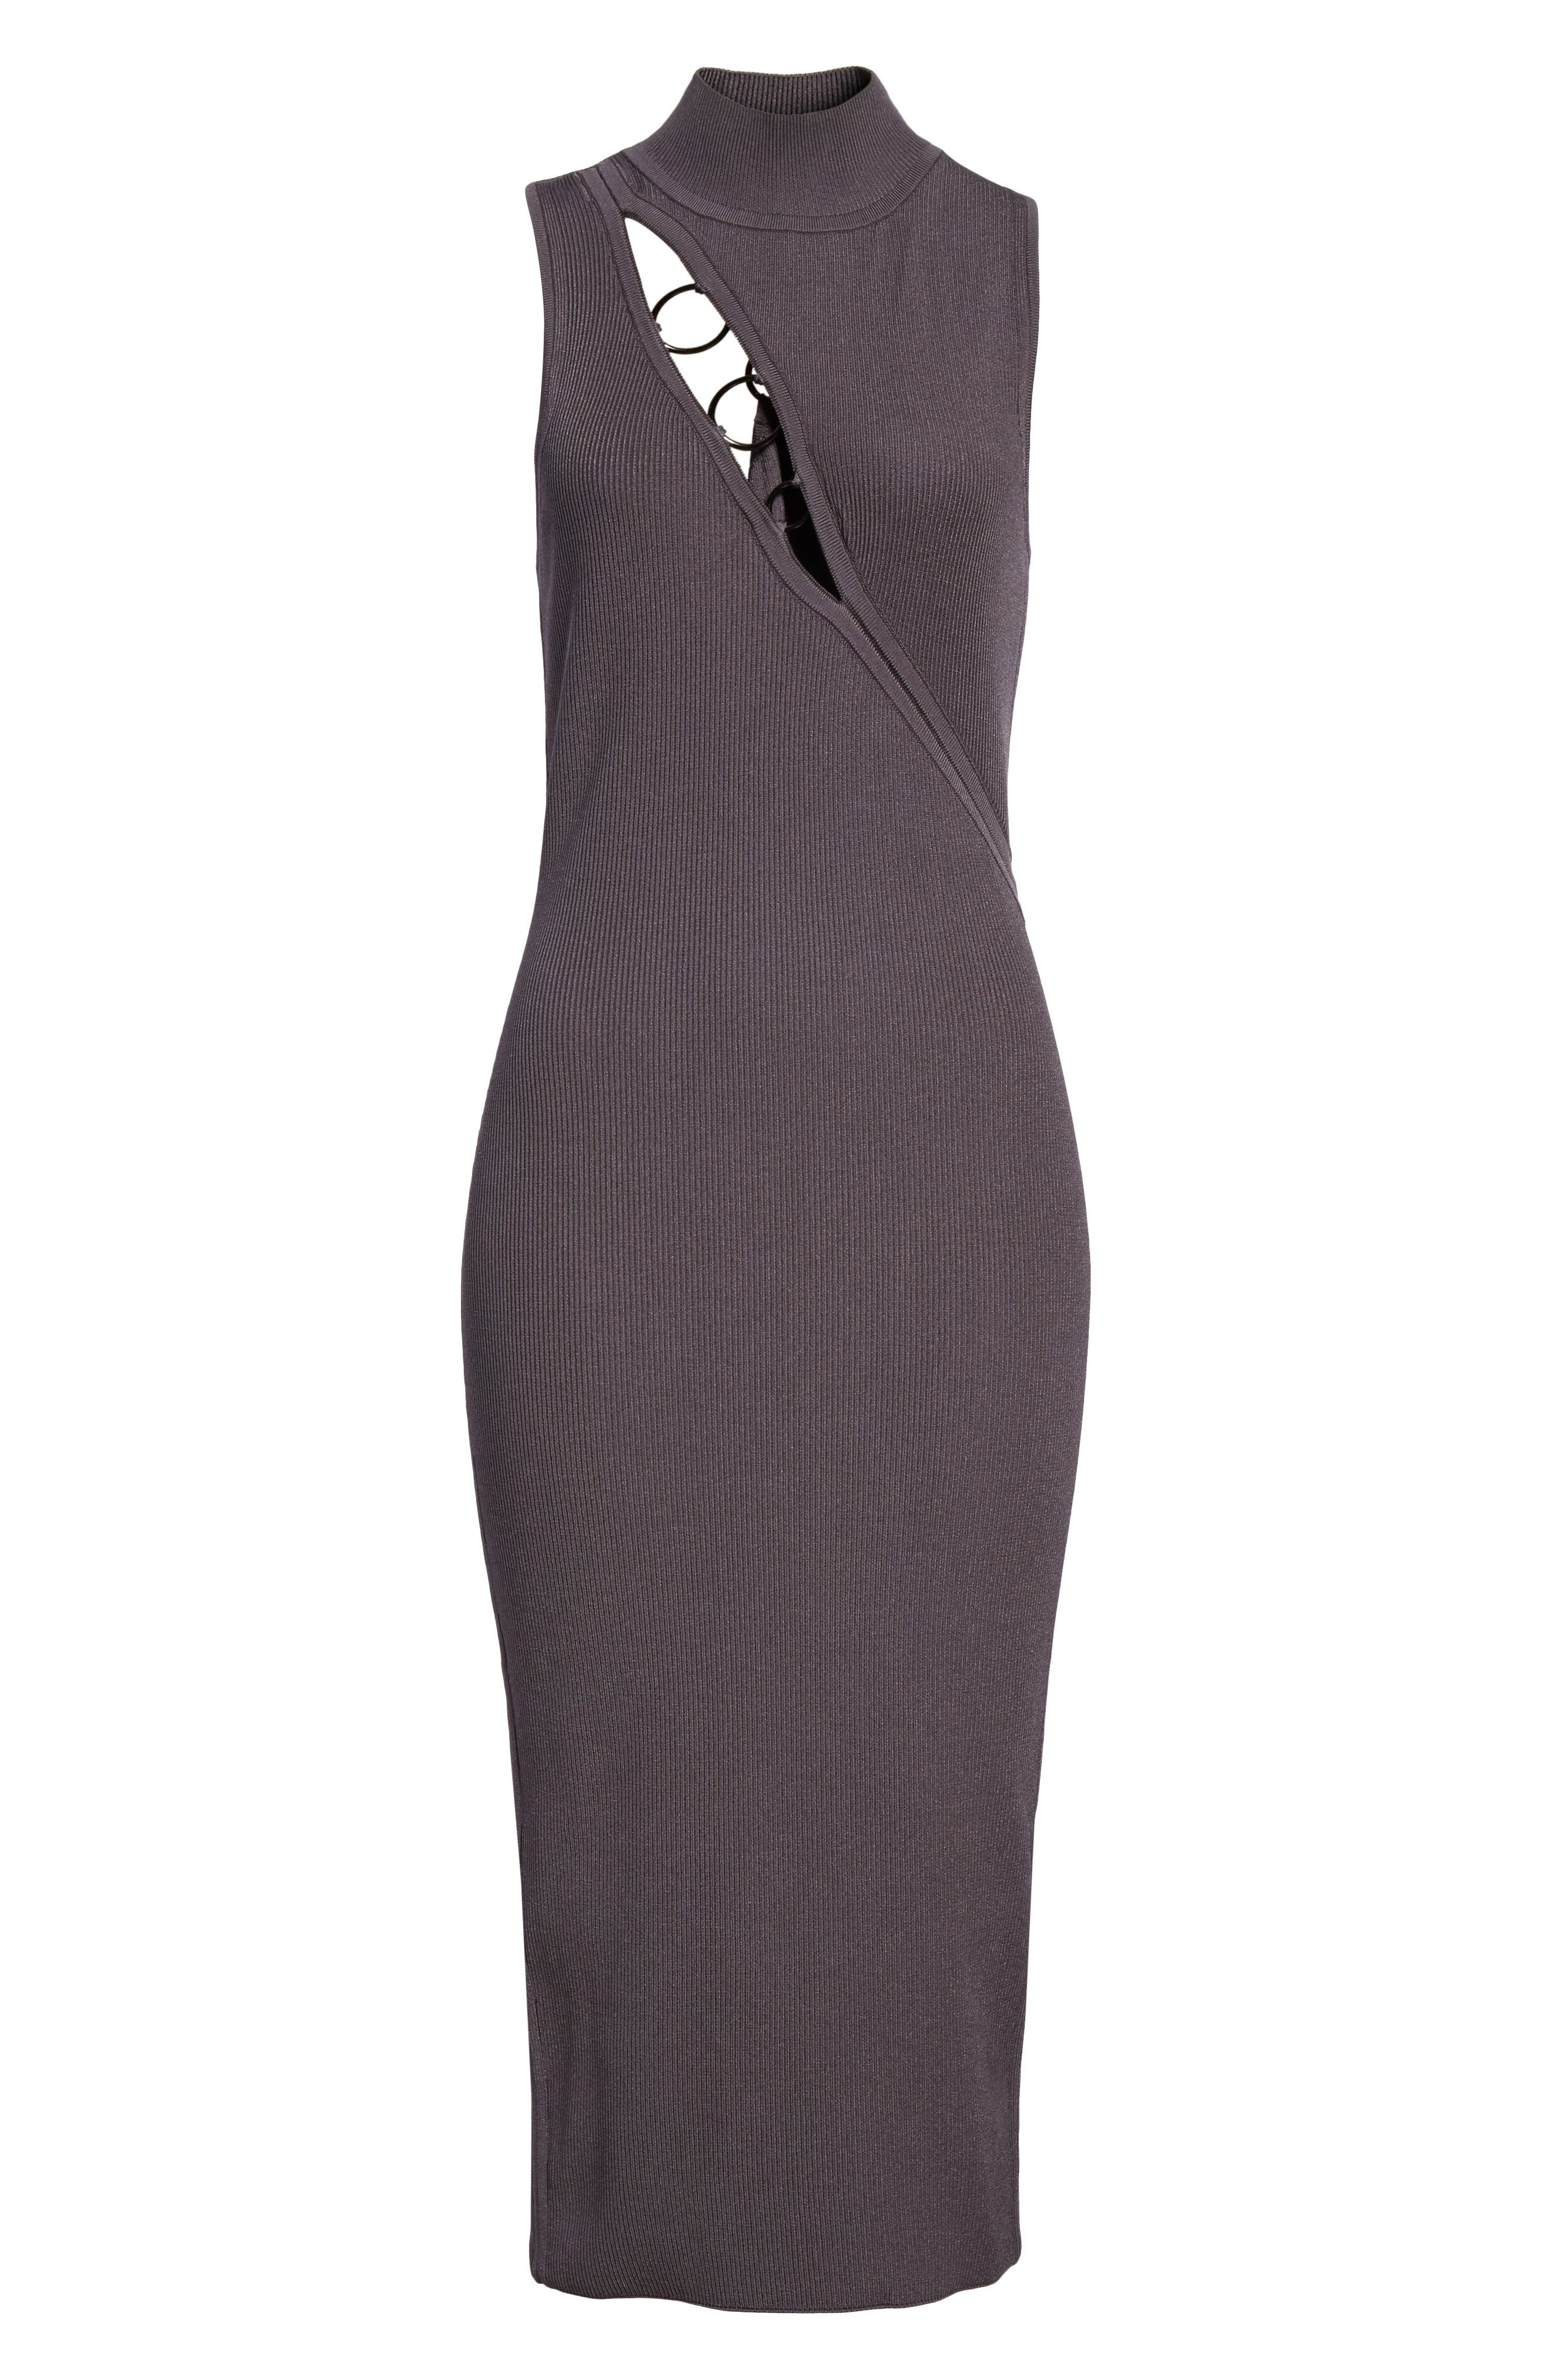 Alsia Cutout Knit Dress,                             Alternate thumbnail 7, color,                             Graphite/ Gunmetal